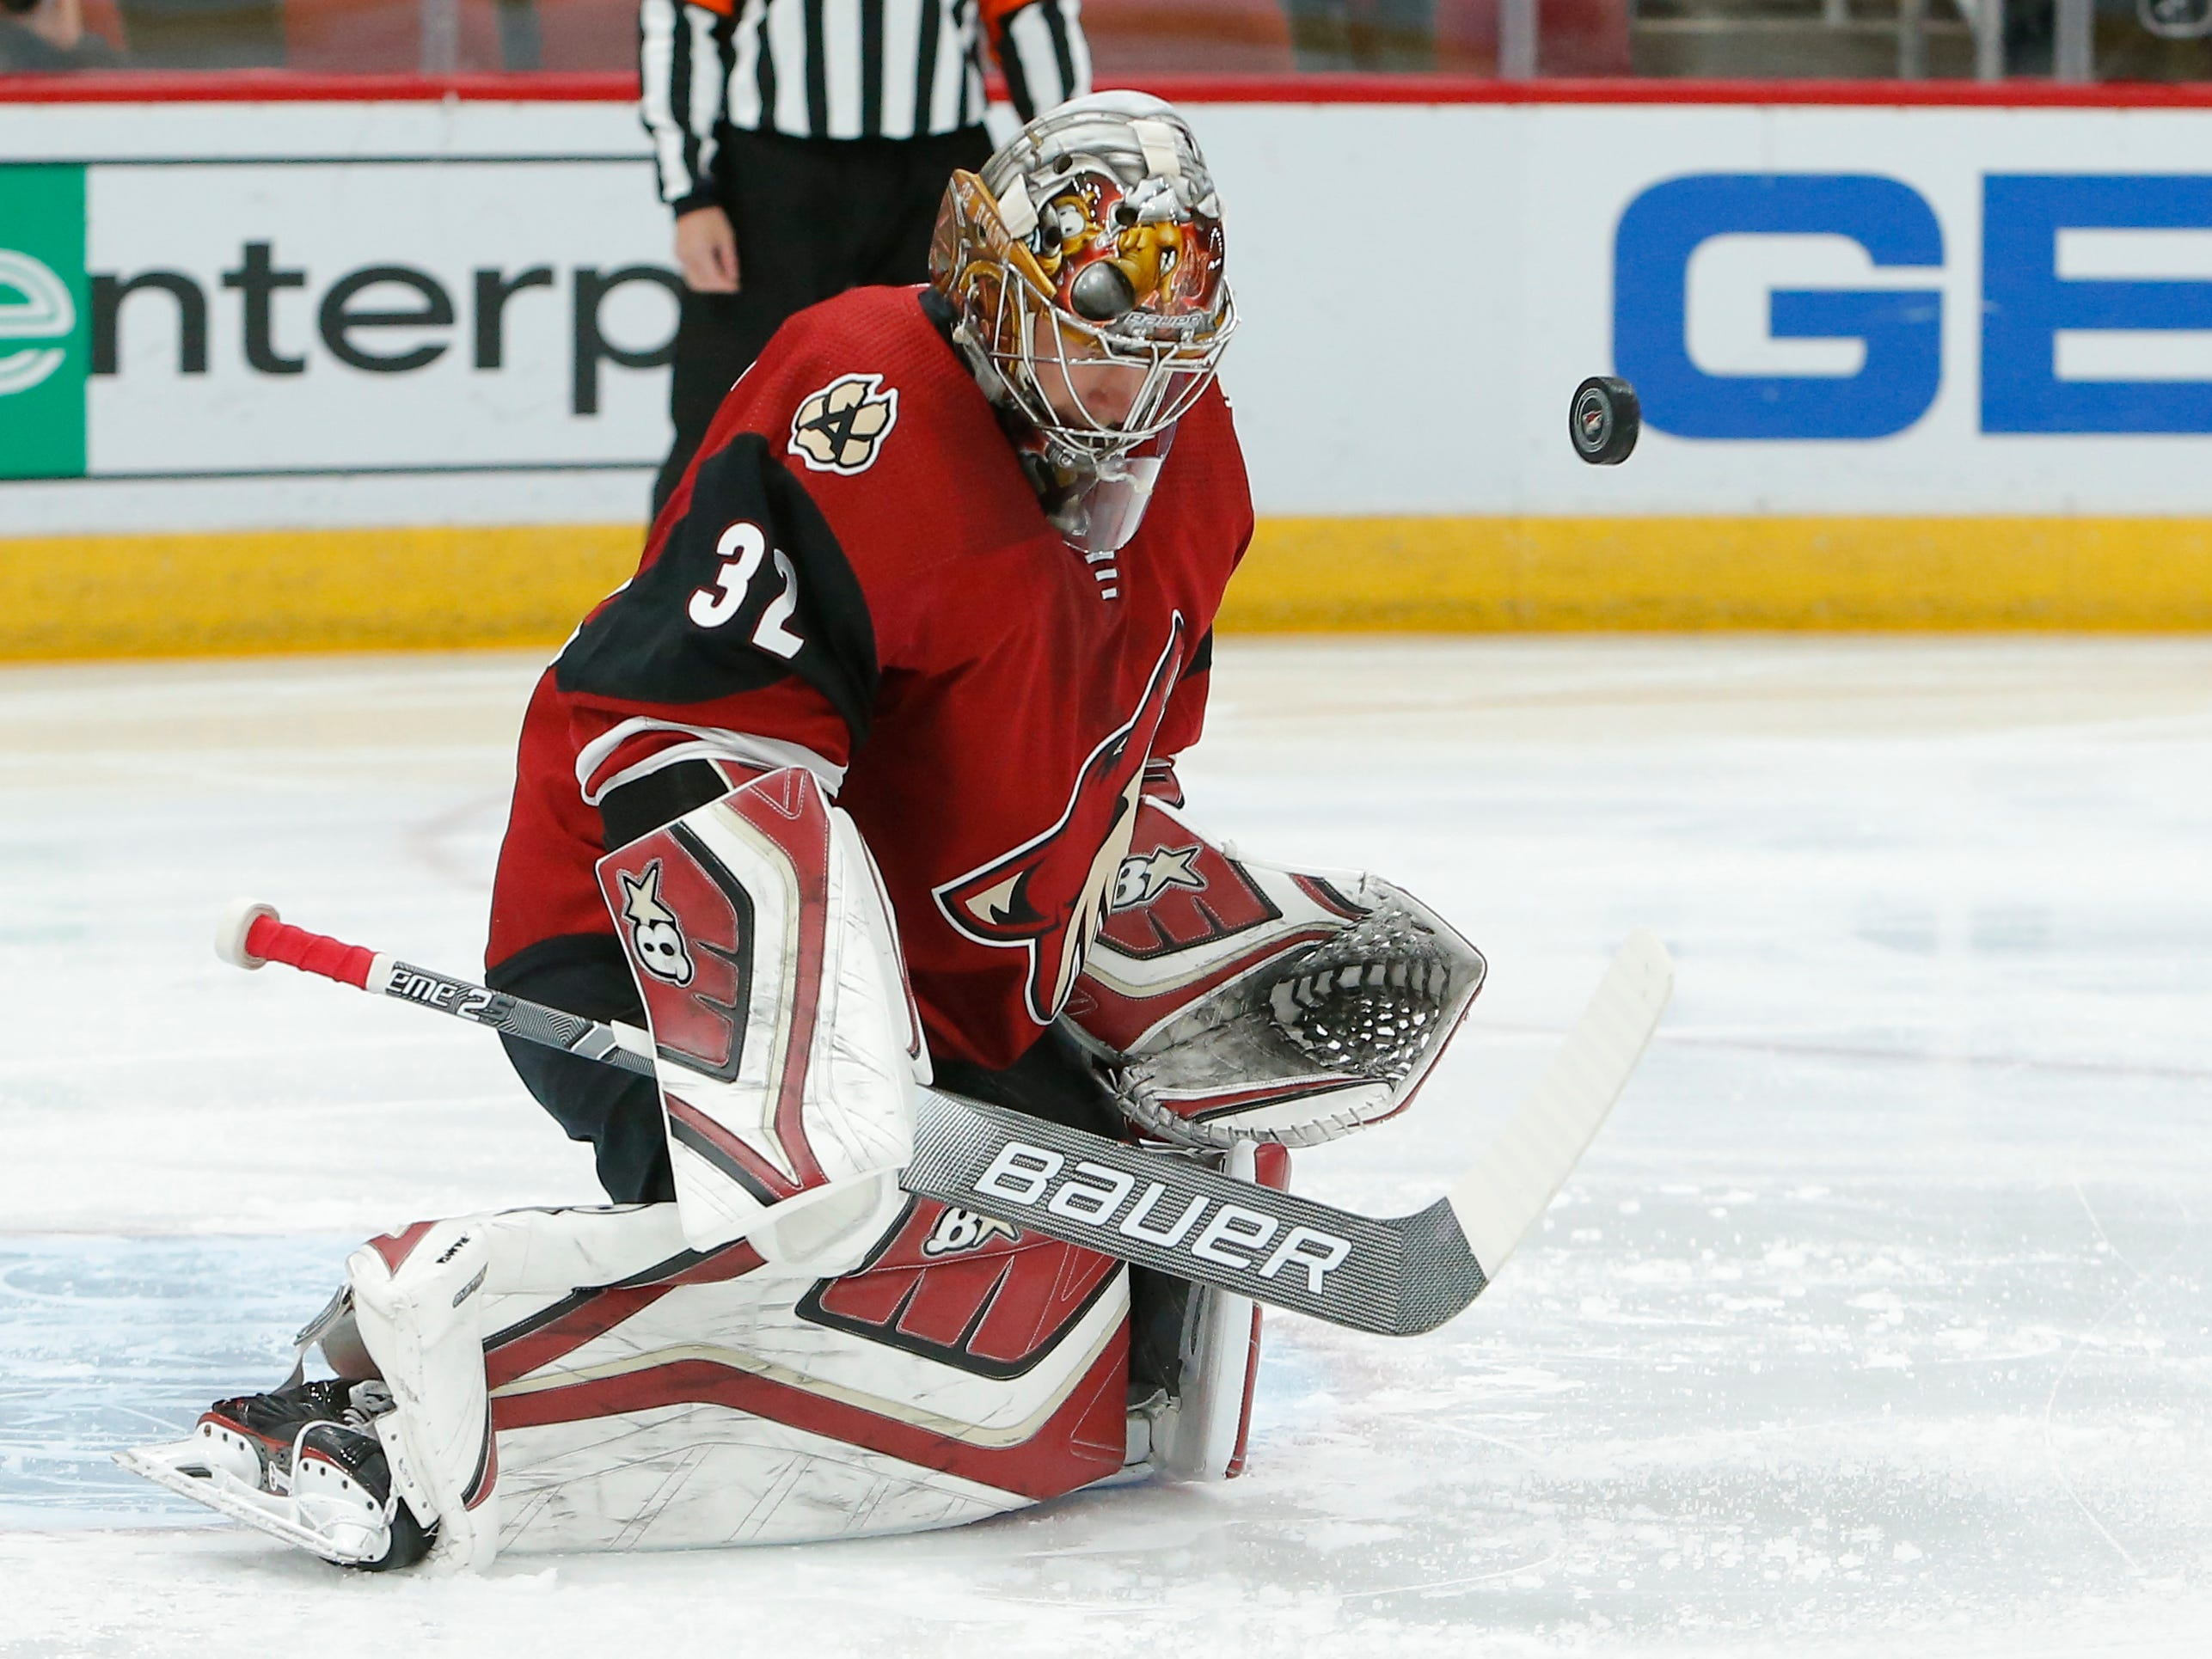 Arizona Coyotes goaltender Antti Raanta (32) in the first period during an NHL hockey game against the Carolina Hurricanes, Friday, Nov. 2, 2018, in Glendale, Ariz. (AP Photo/Rick Scuteri)